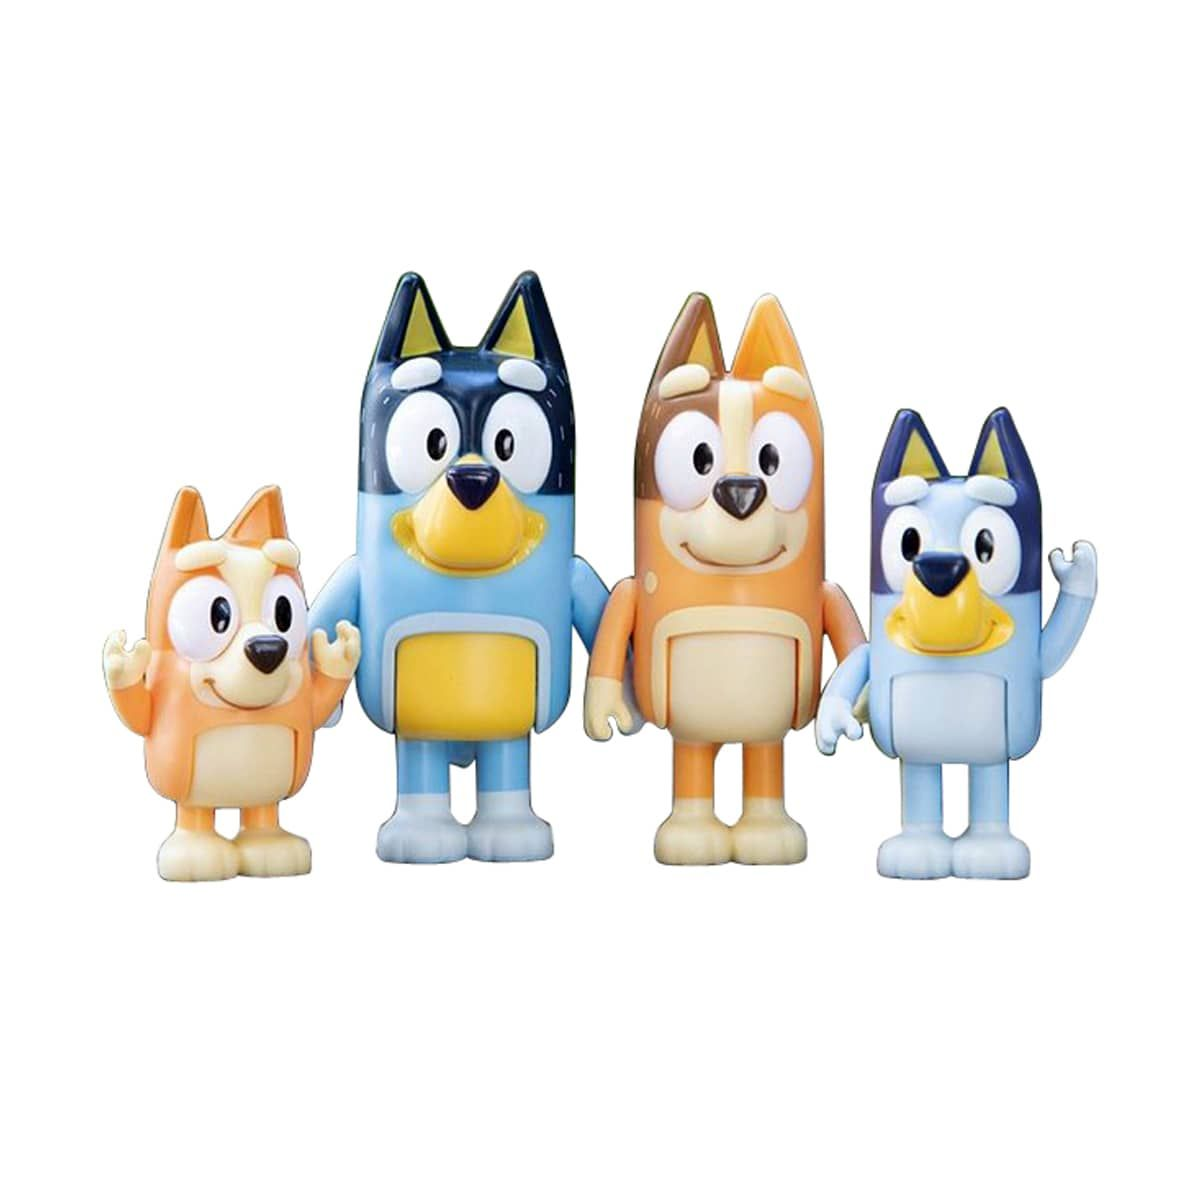 Bluey 4 Pack Figurine Family Pack At Toys R Us Toys R Us Blue Heeler Dogs Gifts For Kids